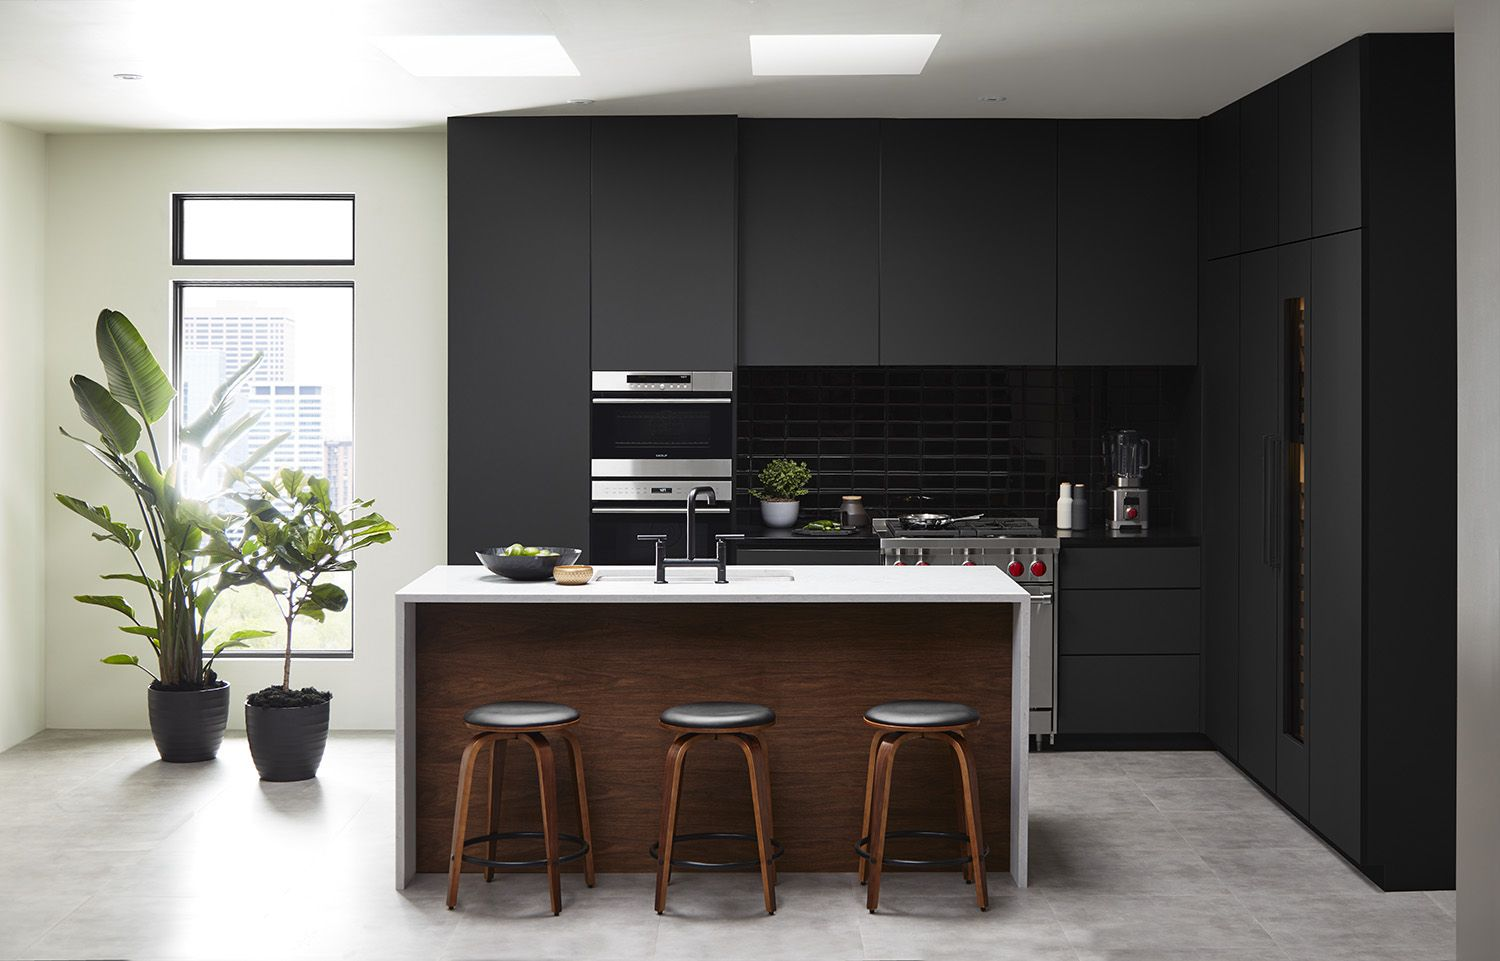 Matte Kitchen Cabinets Matte Finishes Just Got Even Better Introducing Fenix Ntm